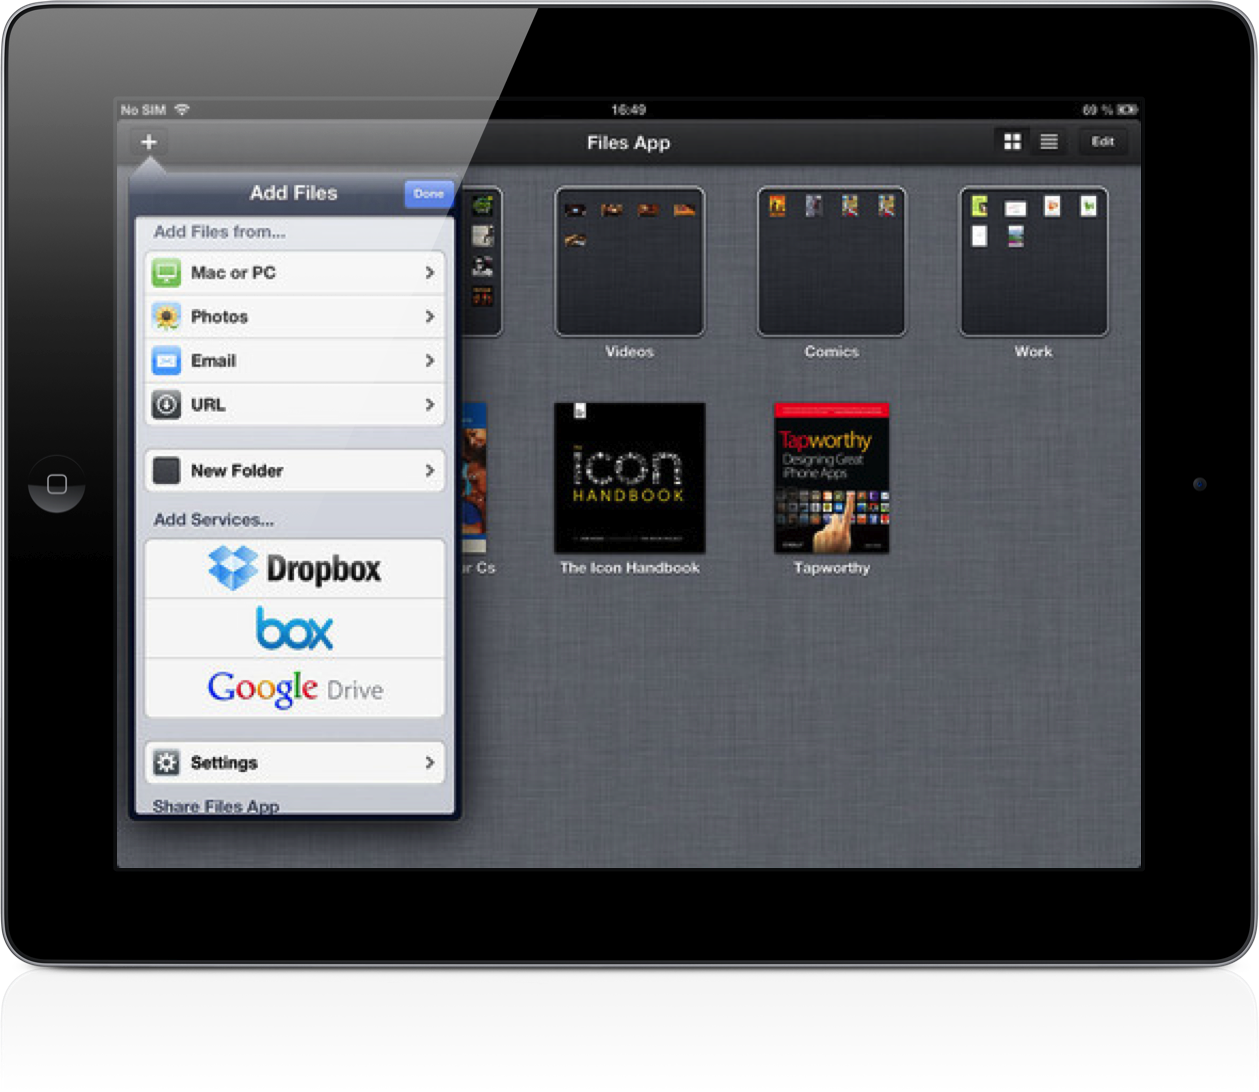 Files App for iPad